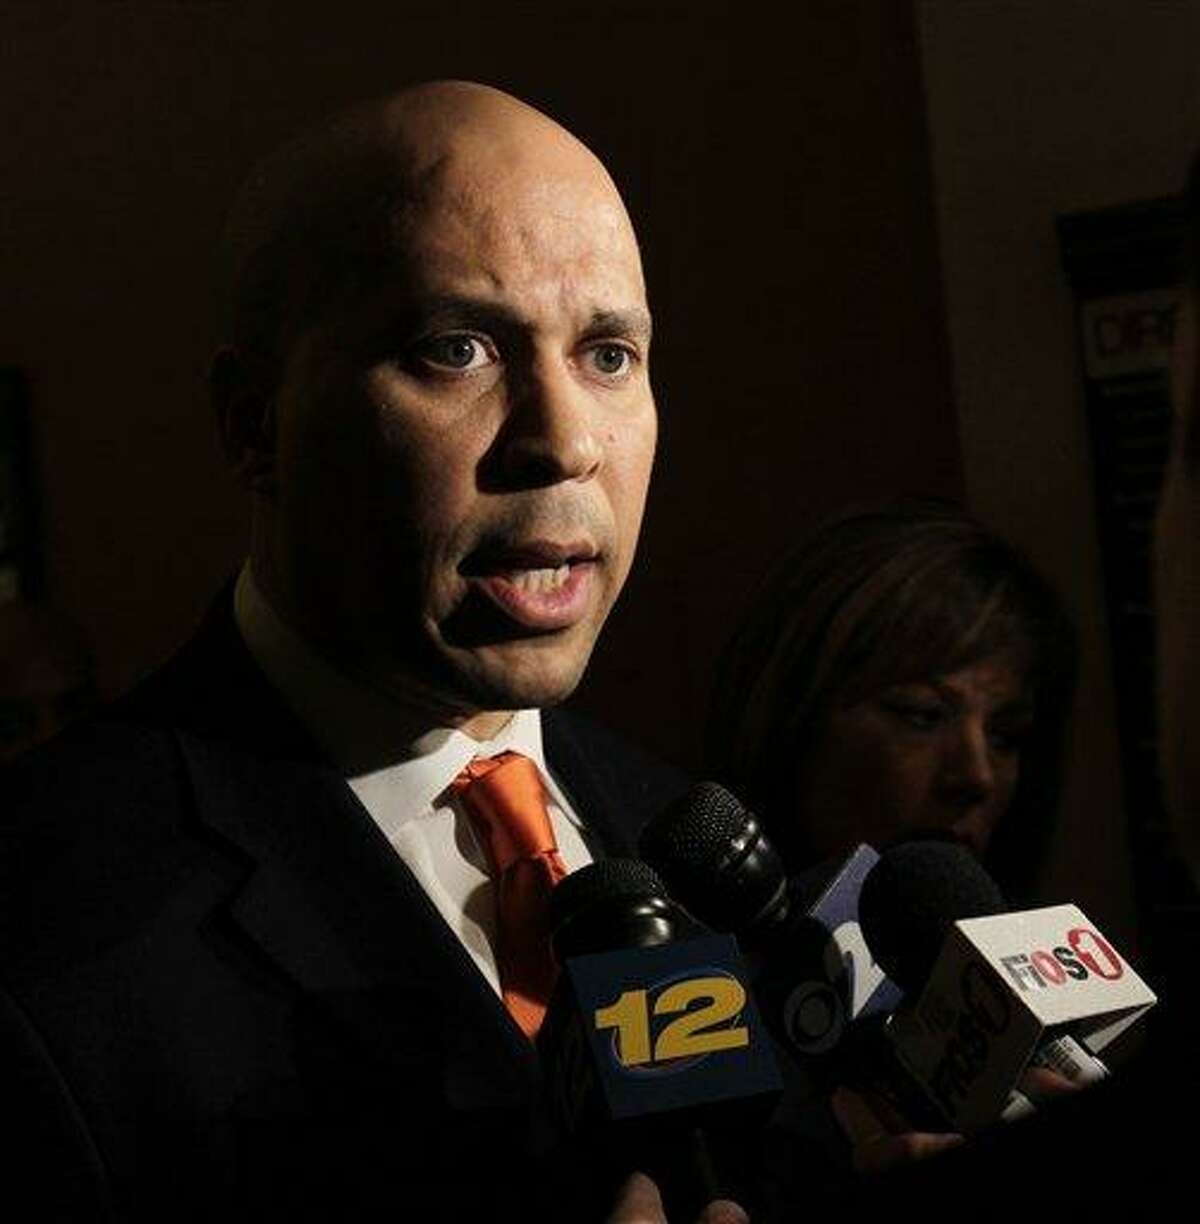 """Candidate: Cory Booker Policy pledge: Executive action for nonviolent drug offenders In June, the Democratic U.S. Senator from New Jersey proposed executive action that would """"offer clemency to thousands of nonviolent drug offenders on his first day in office."""" Back in March, Booker proposed a new bill on social media that would """"cut mandatory minimums for nonviolent drug offenses,"""" and """"ban racial and religious profiling."""" In 2018, as part of a recently enacted bill, Booker wanted to forbid solitary confinement for juveniles in federal prisons. (Photo Credit: The Associated Press)"""